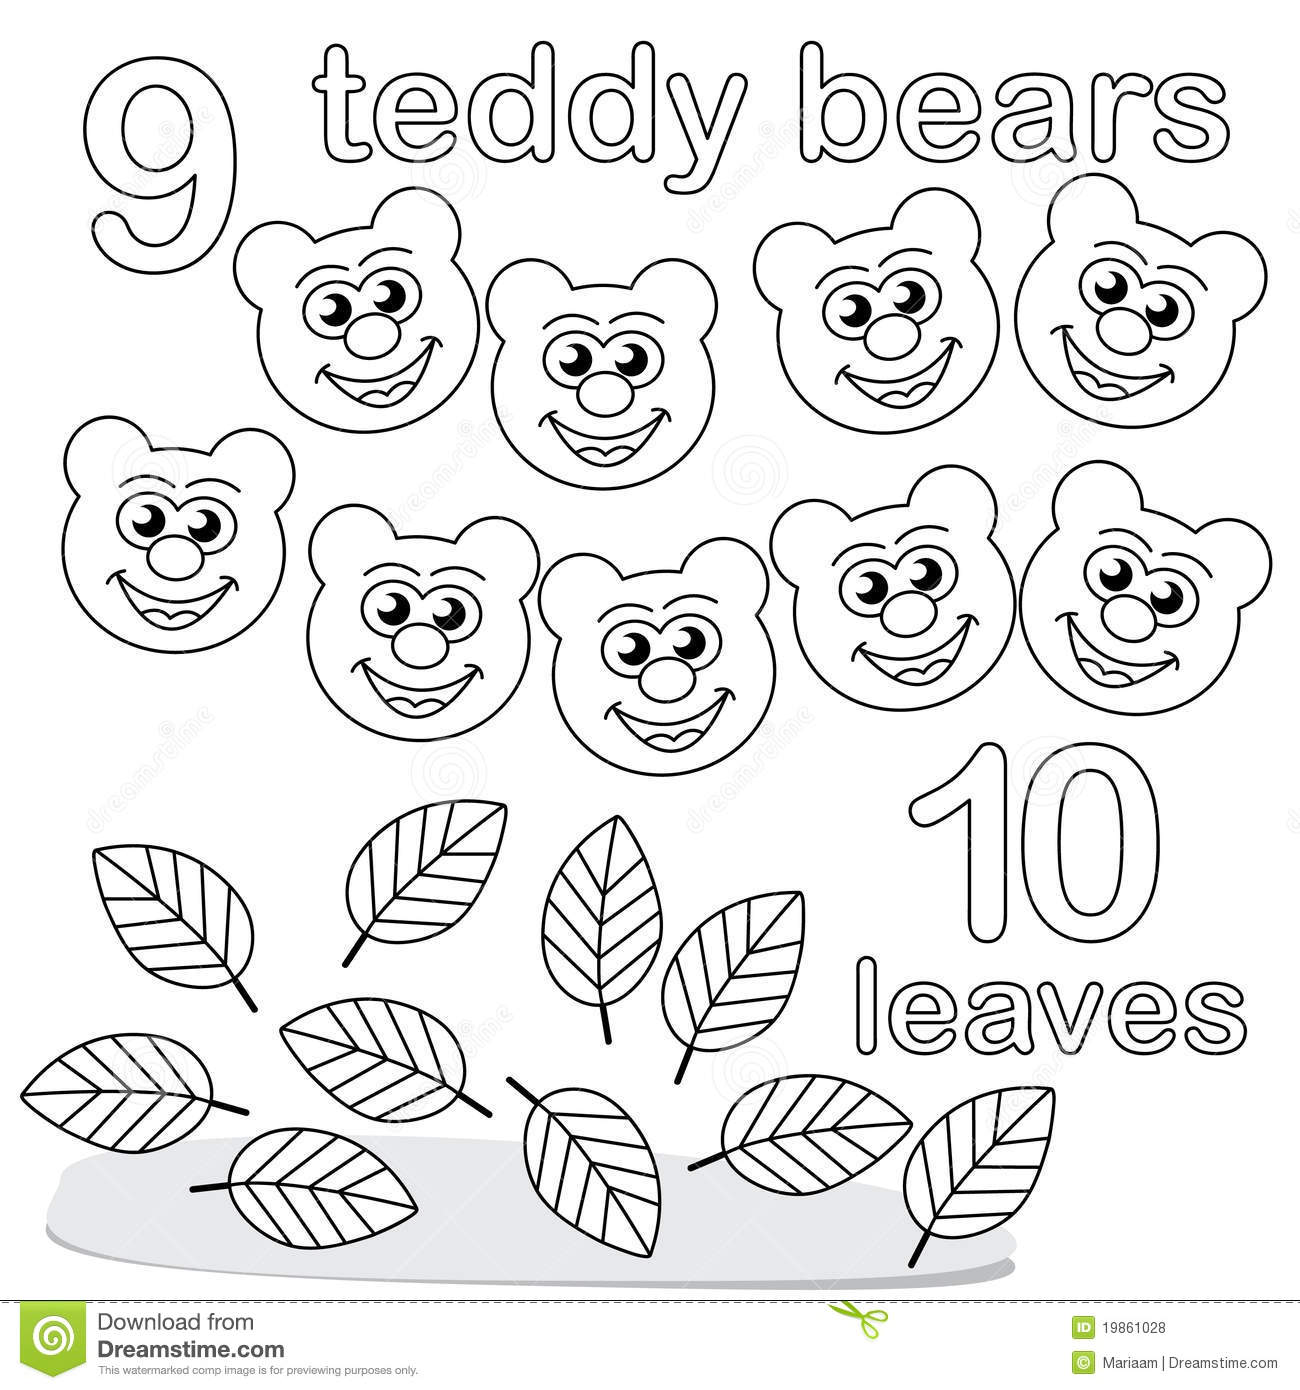 Numbers 1 to 10 clipart black and white vector download Counting Game With Number 9 & 10 Royalty Free Stock Photos - Image ... vector download